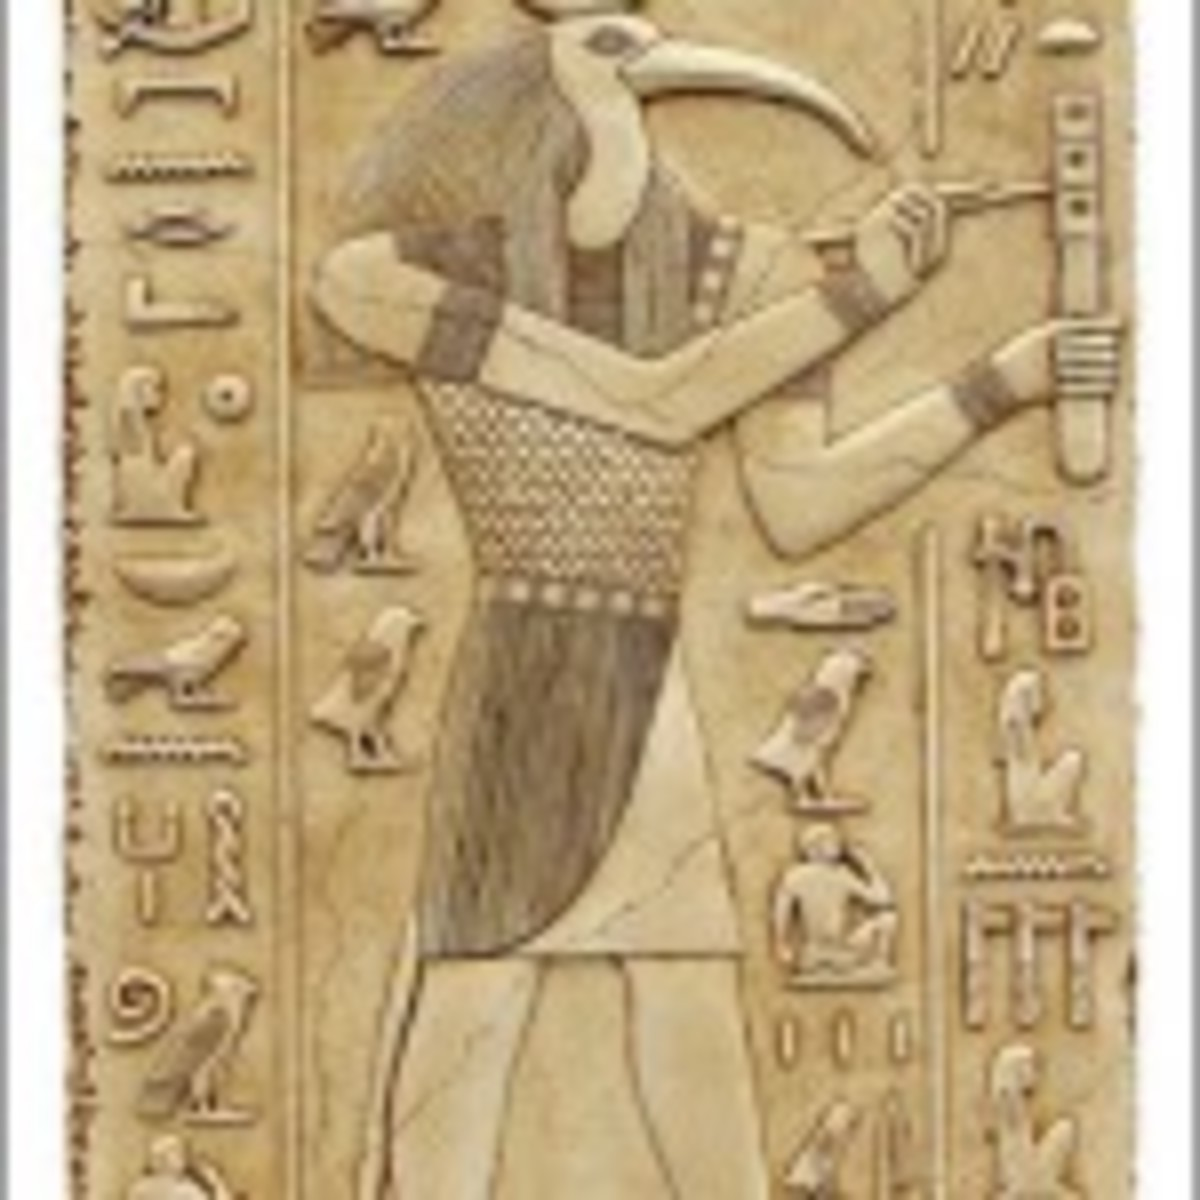 Troth - Egyptian God of Writing - Google Images